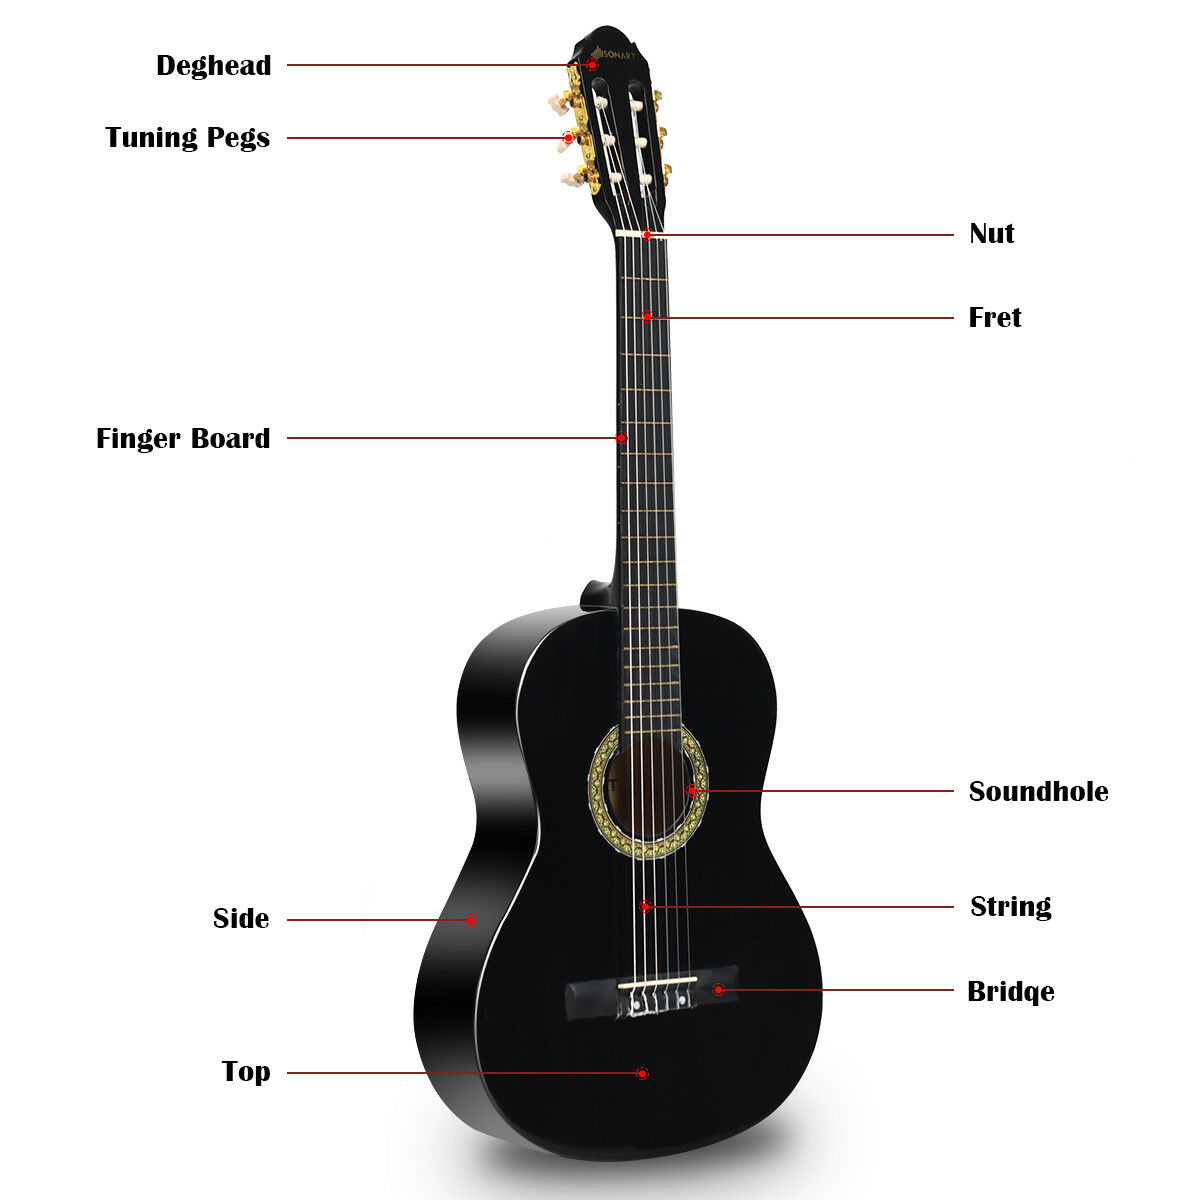 sonart 39 full size classical guitar 6 string w bag pick strings cleaning cloth ebay. Black Bedroom Furniture Sets. Home Design Ideas